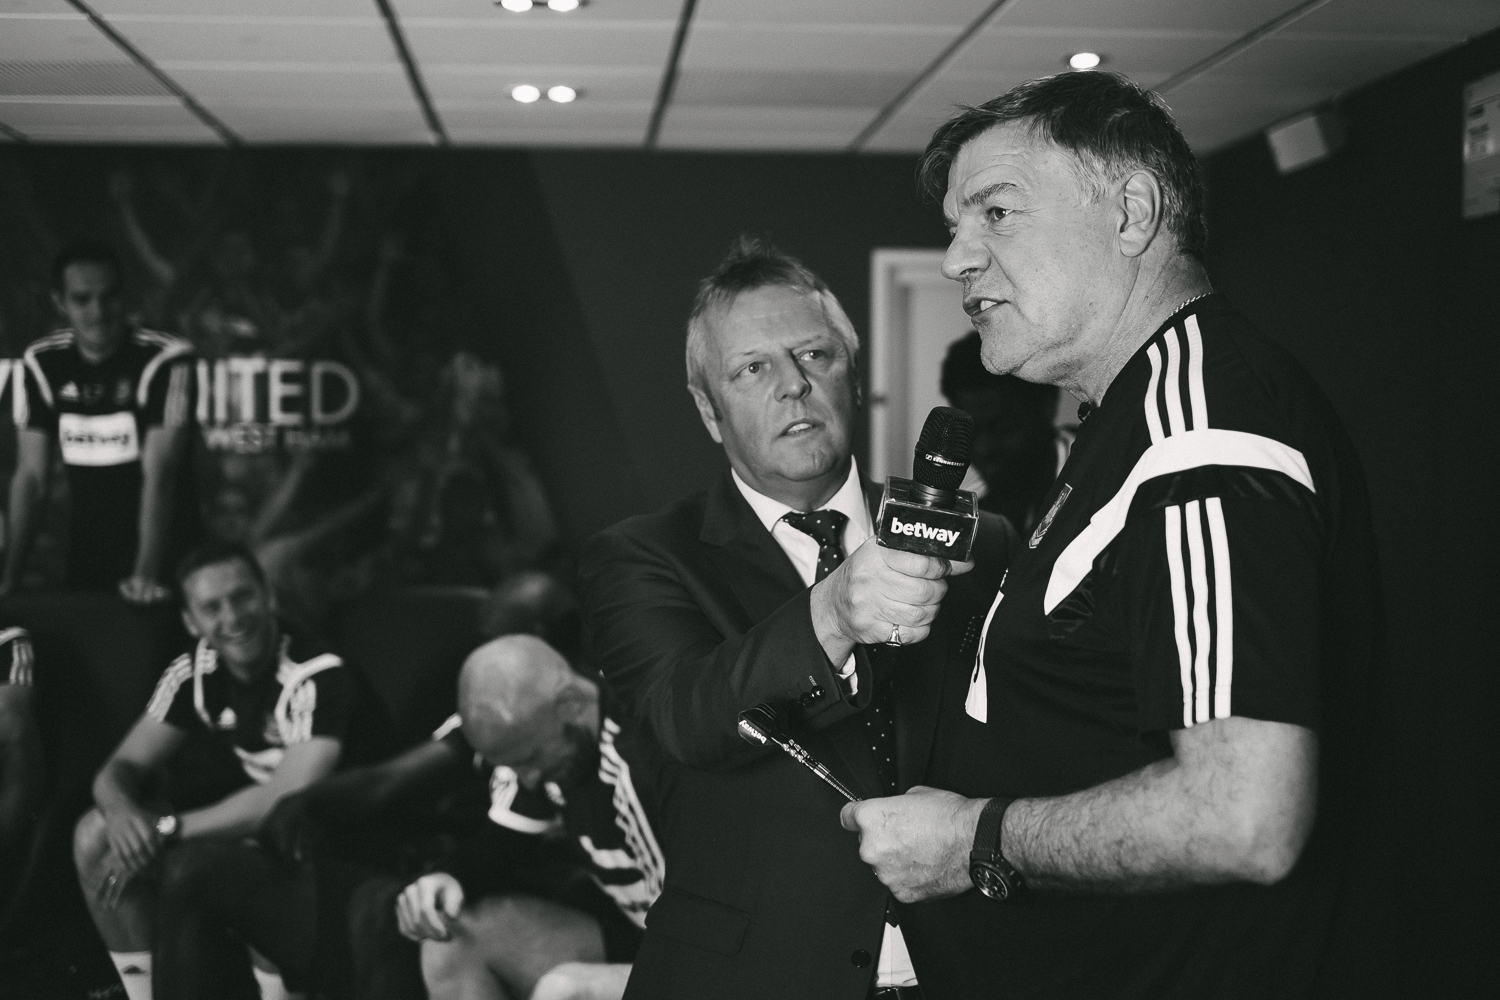 Betway_WestHam_Alex_Wallace_Photography_0227.jpg